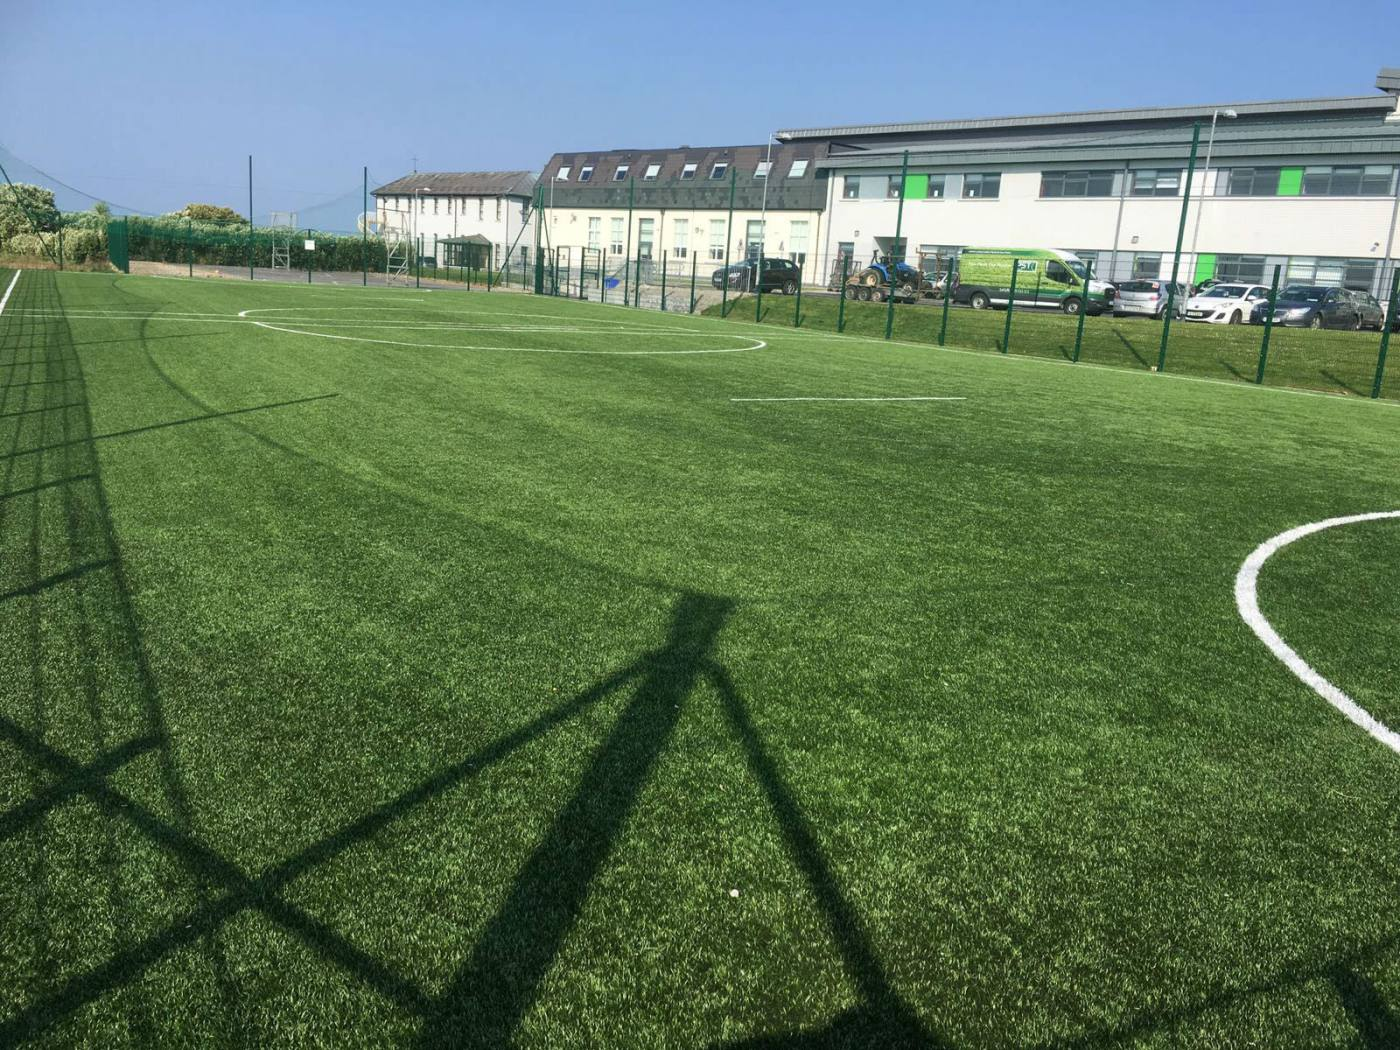 3G pitch at Our Ladys Secondary School Belmullet